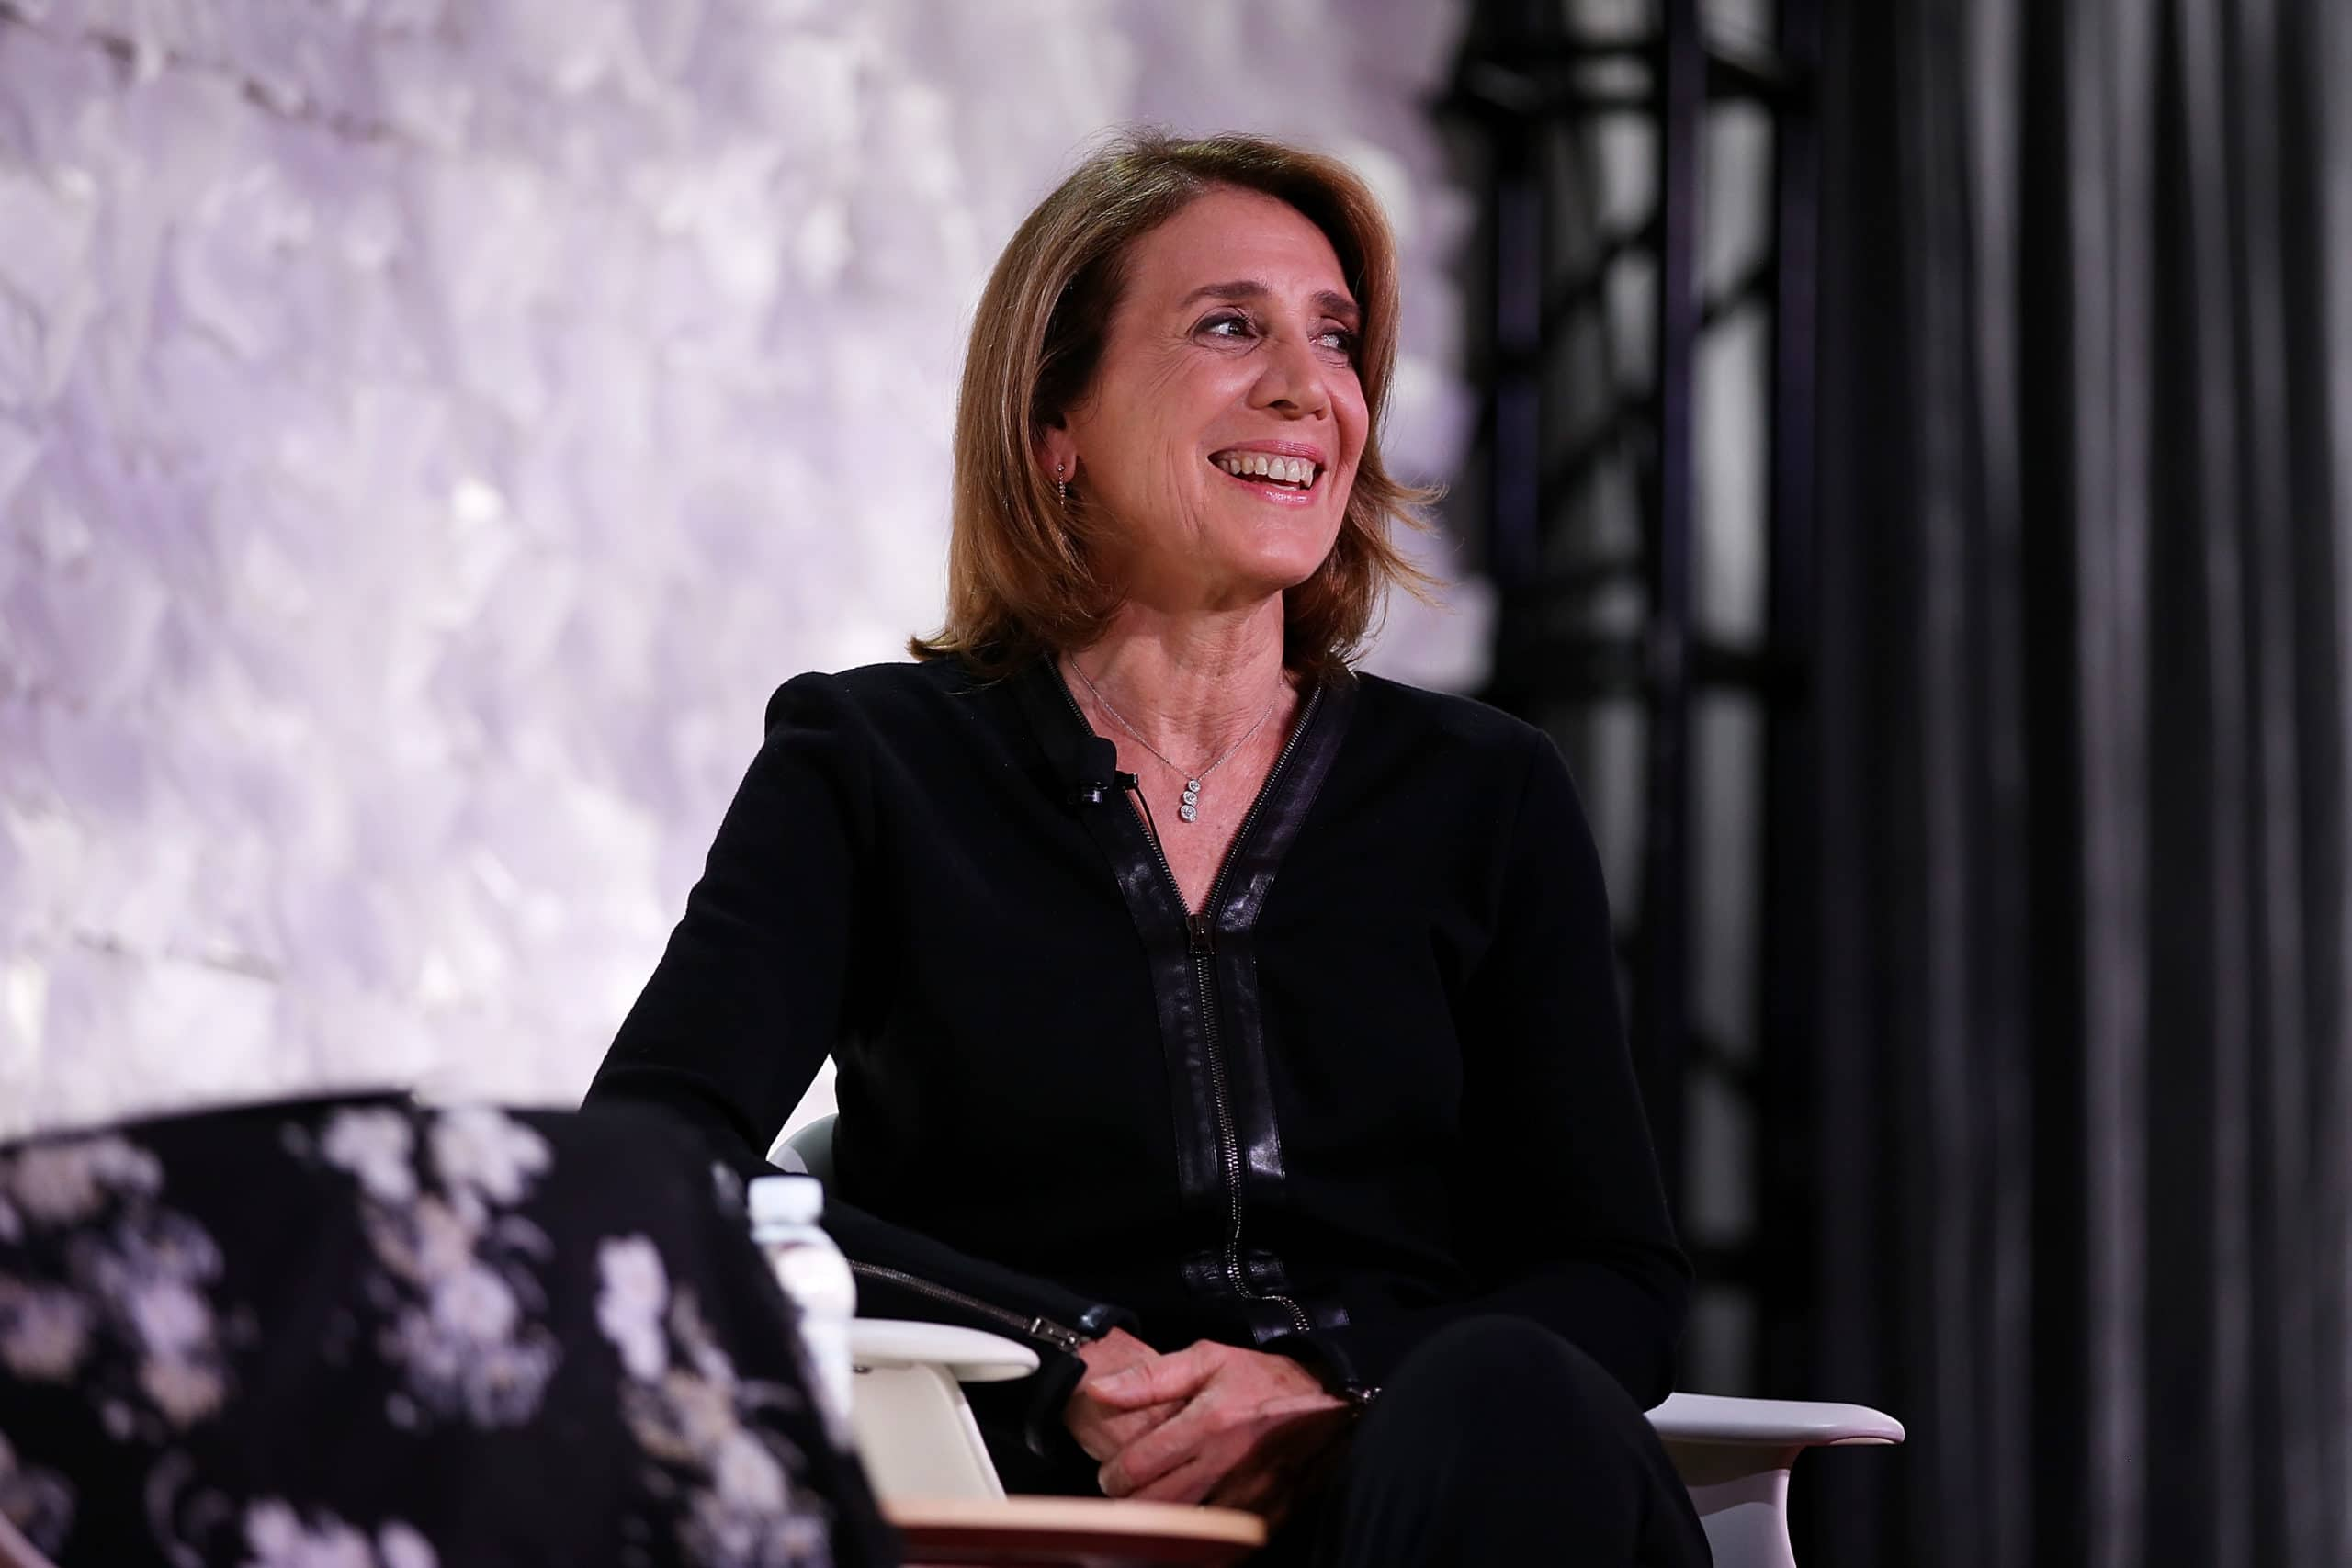 Fortune Most Powerful Women Summit 2018 – Day 1